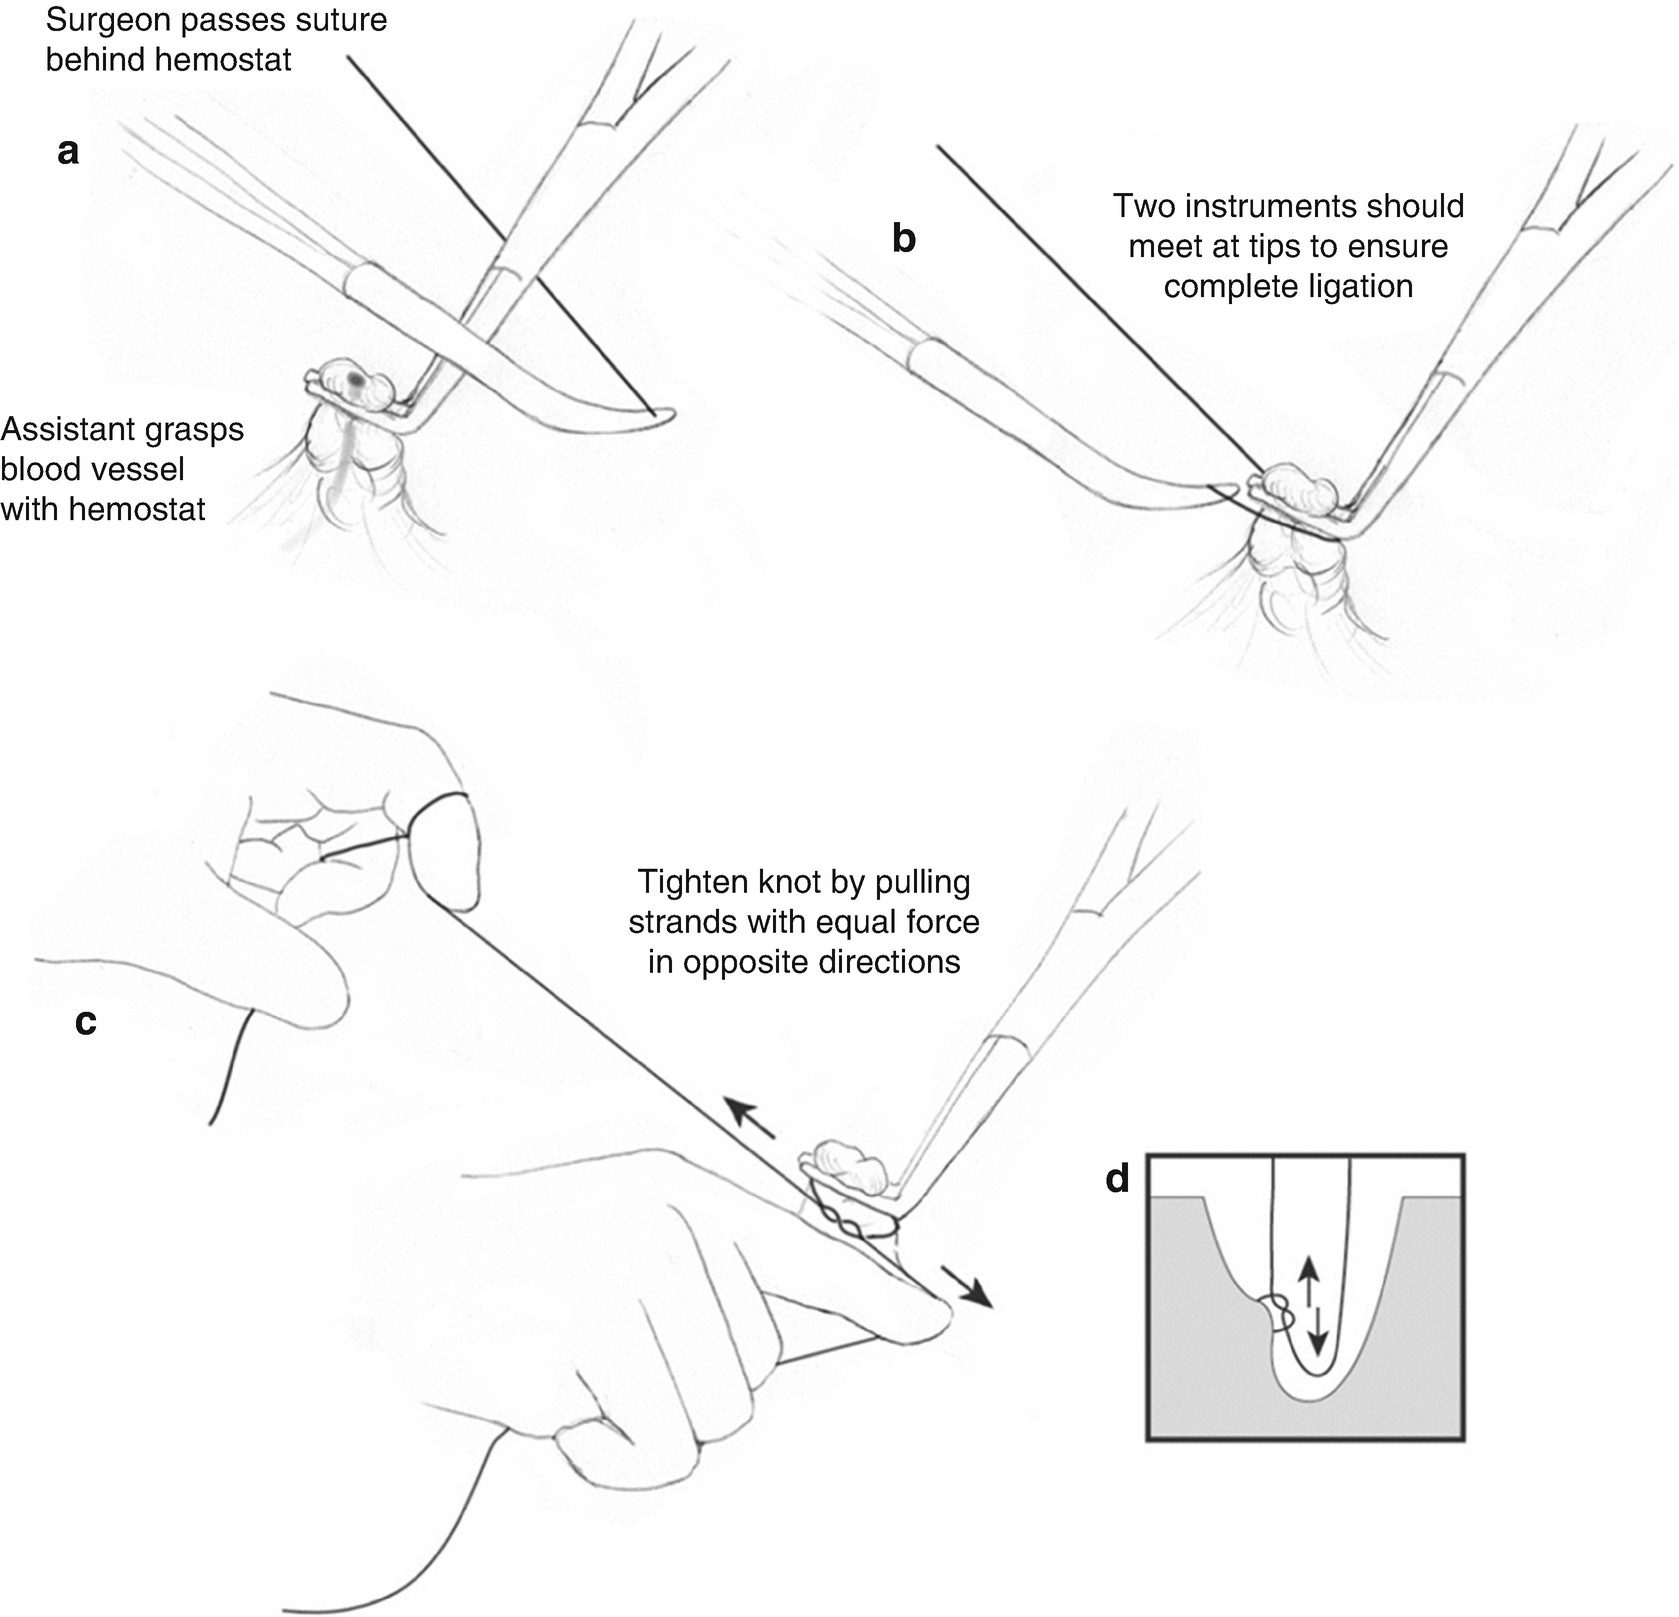 Fundamentals Of Sutures Needles Knot Tying And Suturing Technique Hercules Foot Switch Wiring Diagram Open Image In New Window